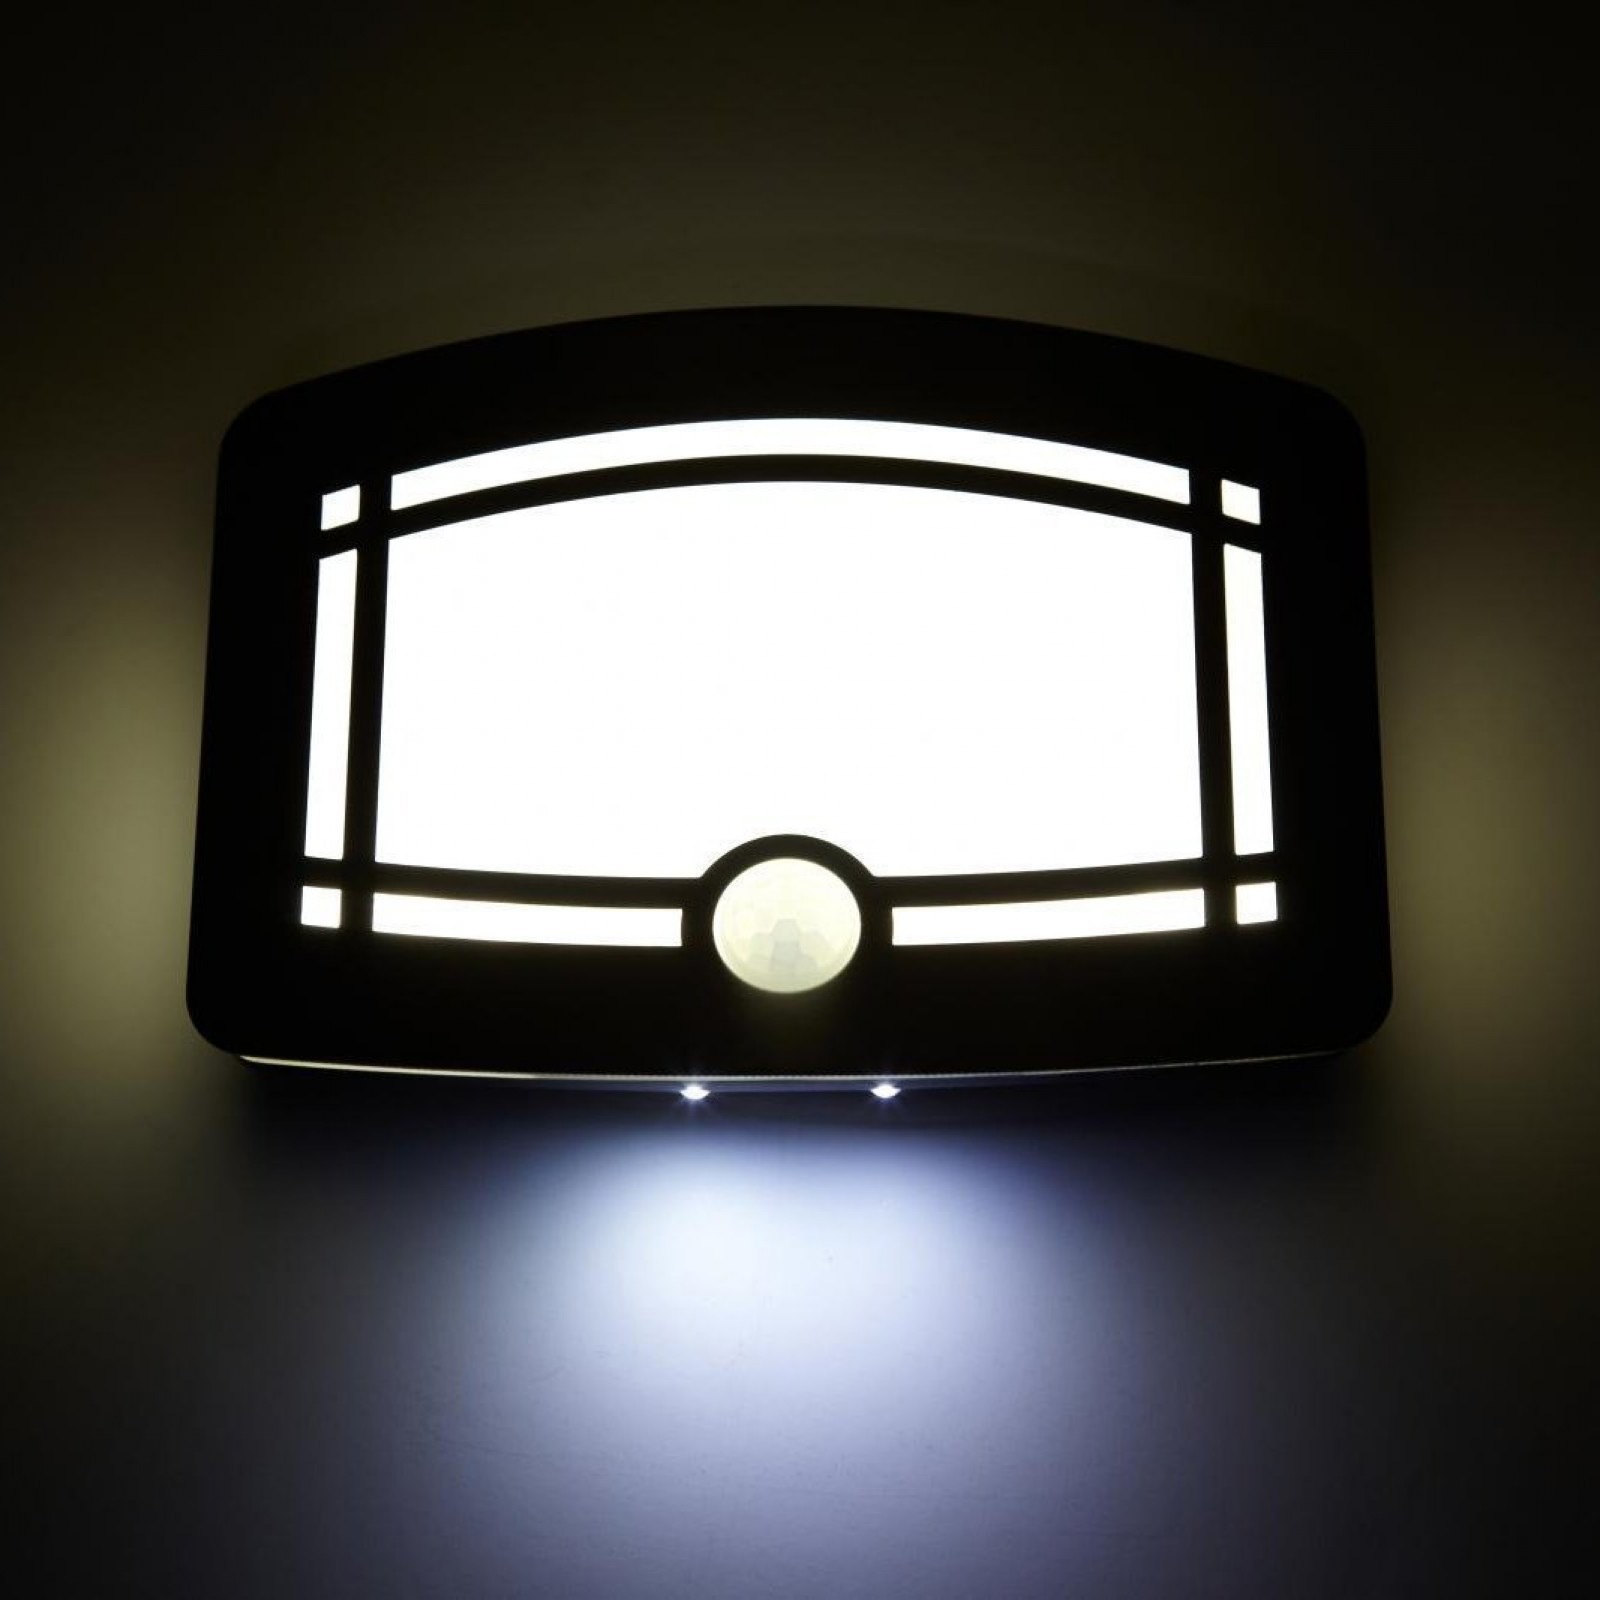 Wall Sconce Night Light : Sensor LED Wall Sconce Garden Pathway Driveway Motion Activated Night Light Lamp eBay